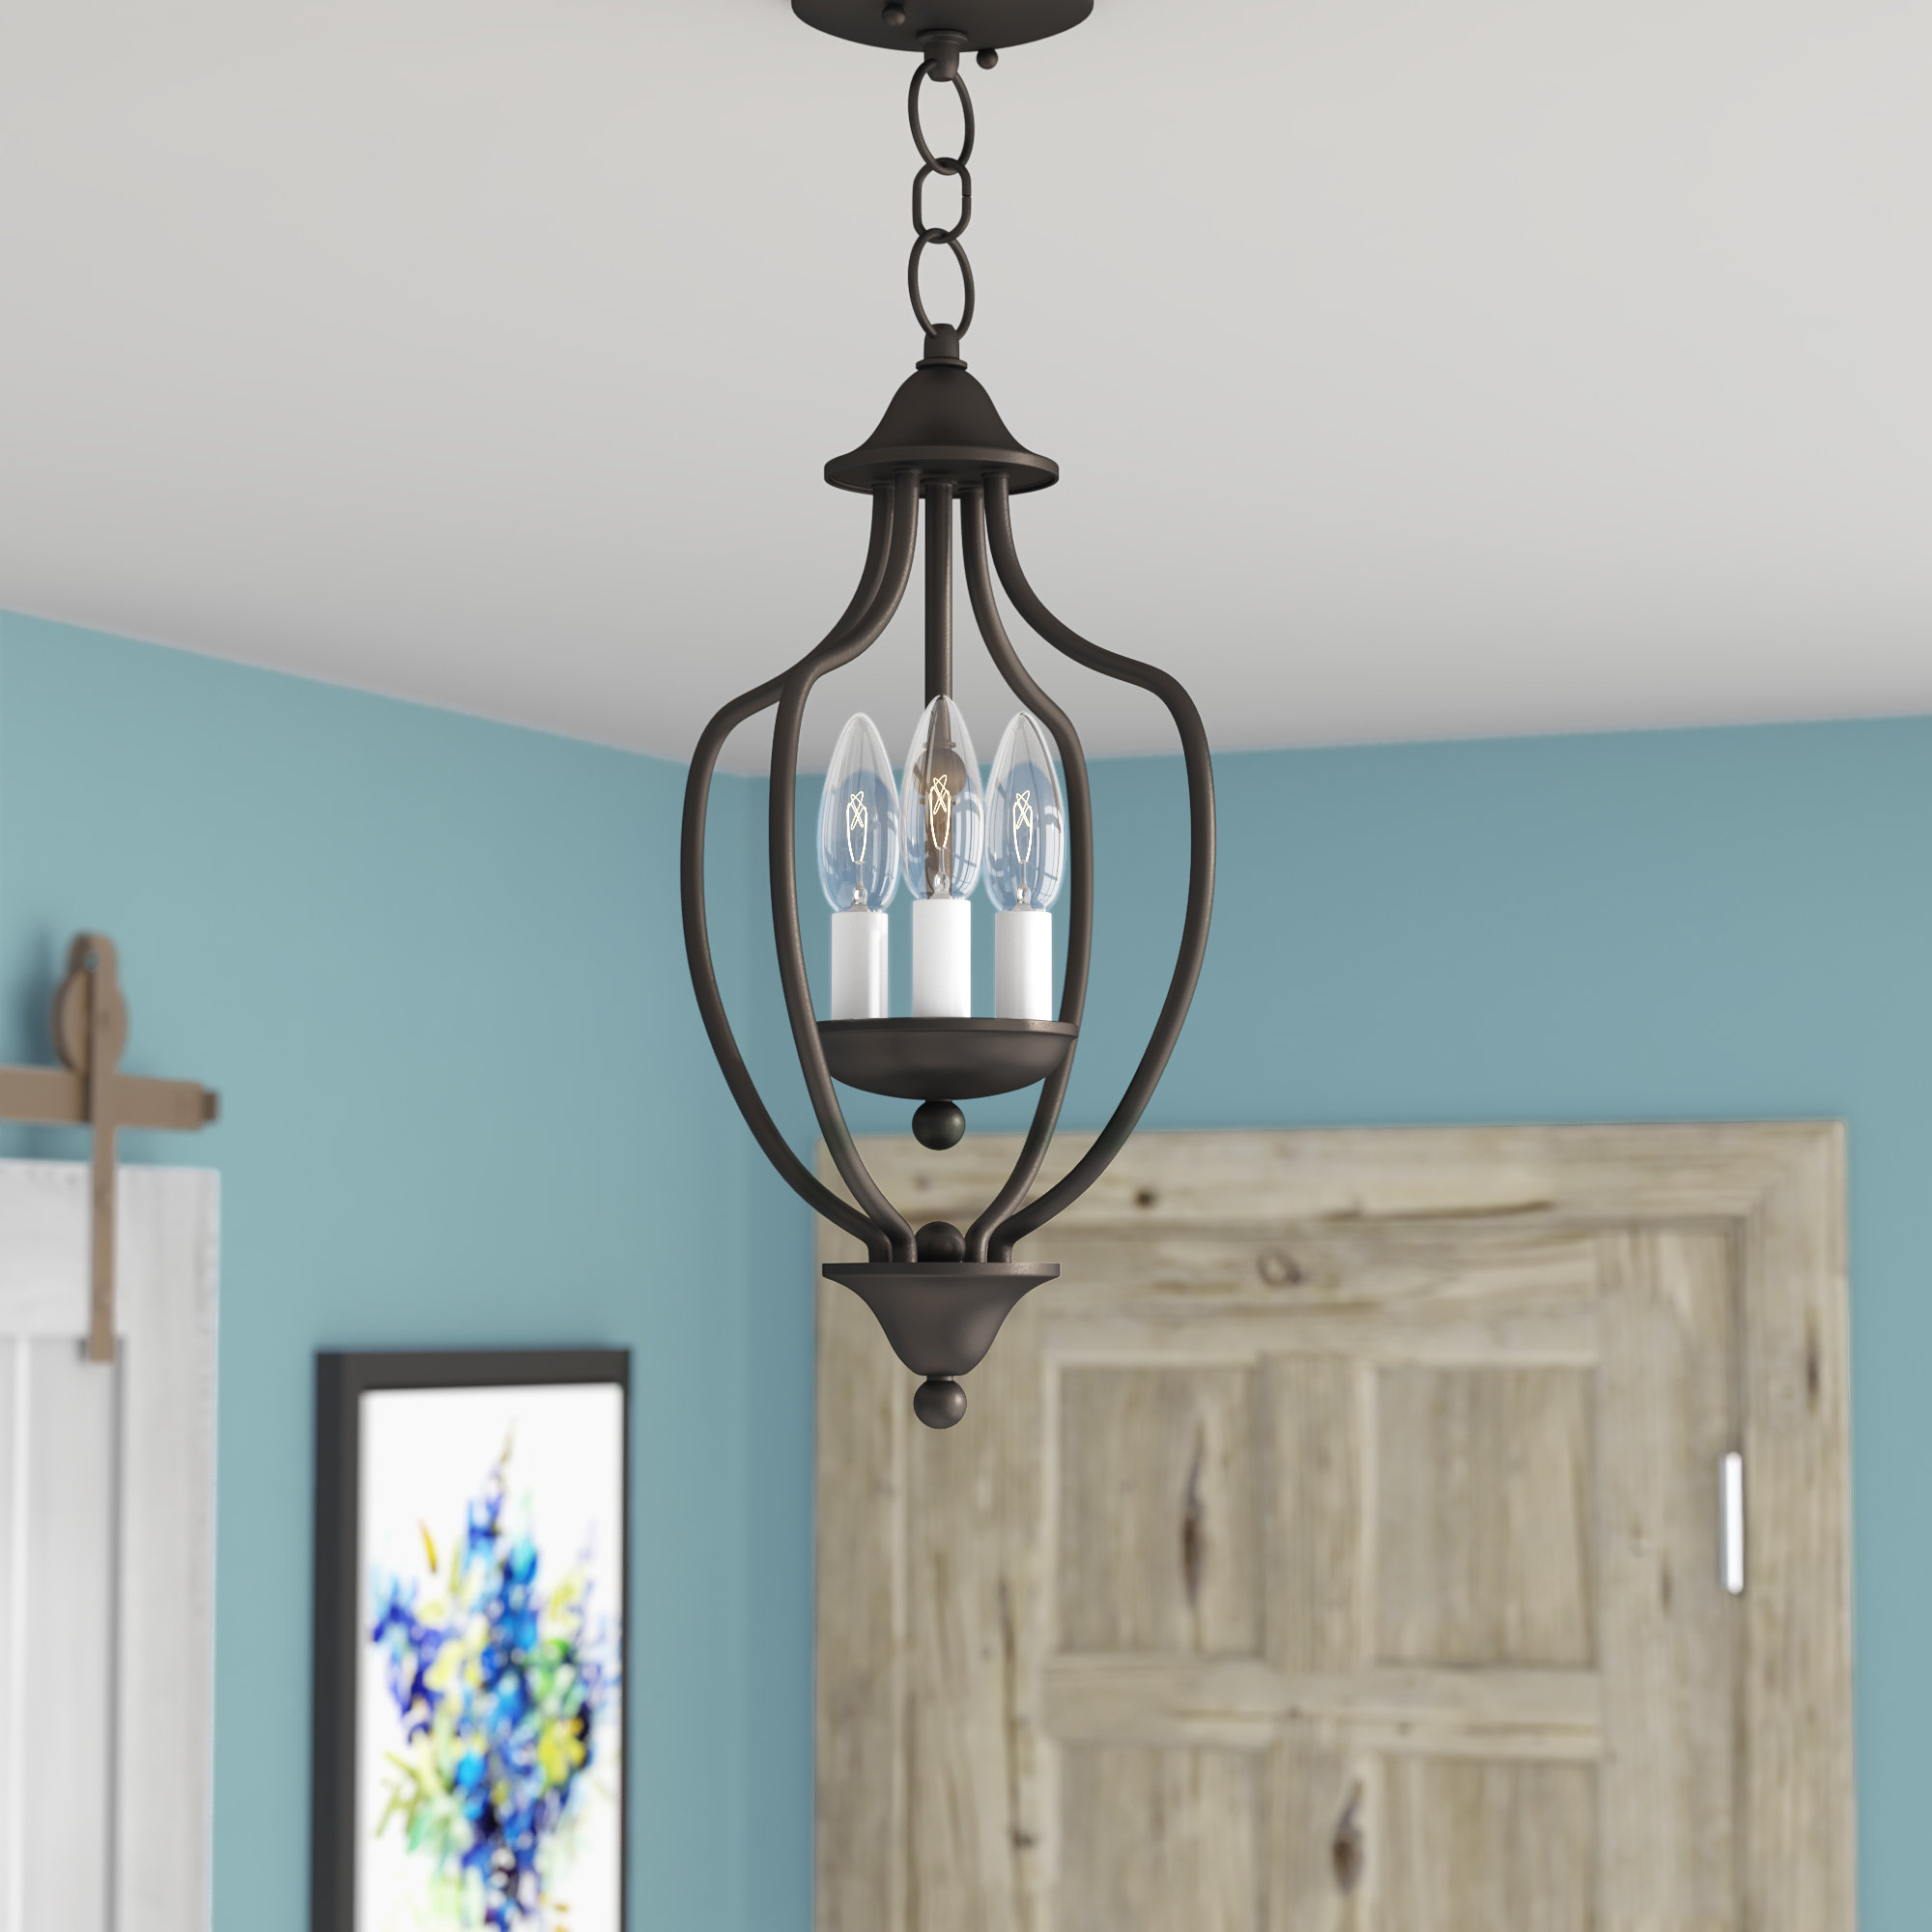 Most Recent Foyer Charlton Home Pendant Lighting You'll Love In 2019 Regarding Warner Robins 3 Light Lantern Pendants (View 9 of 20)